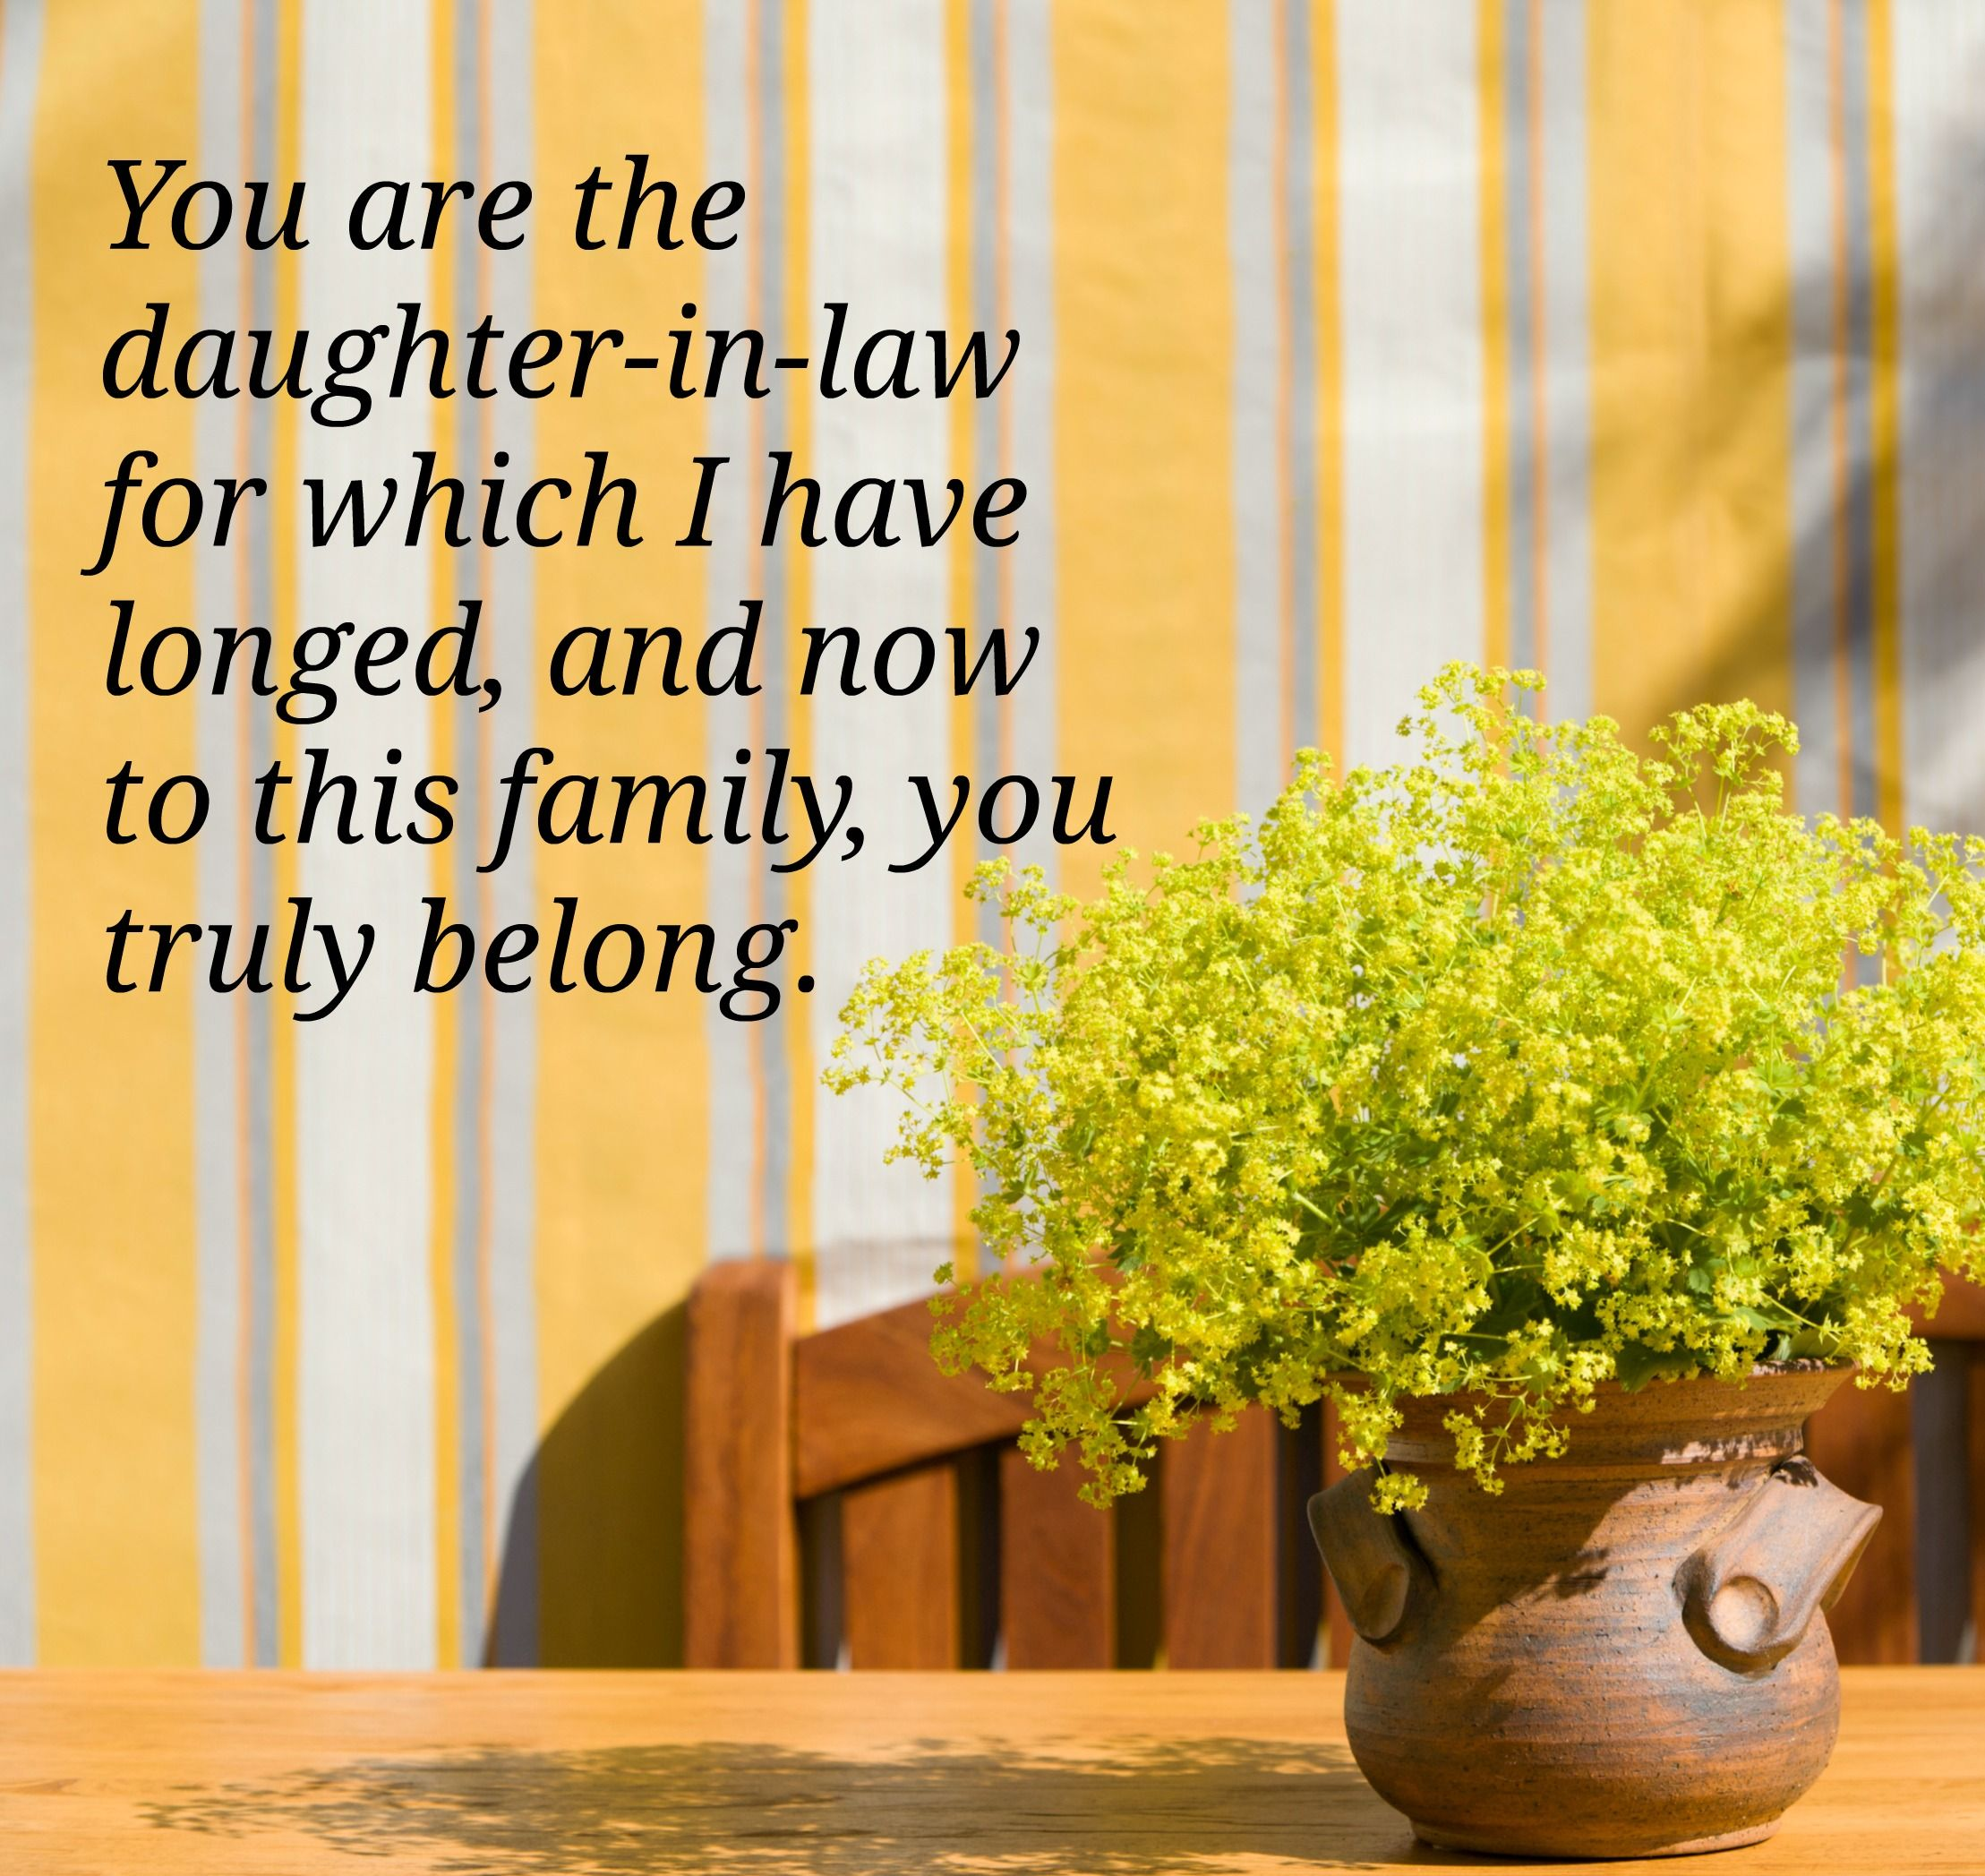 Your Son-In-Law's Quotes Are Over Longing